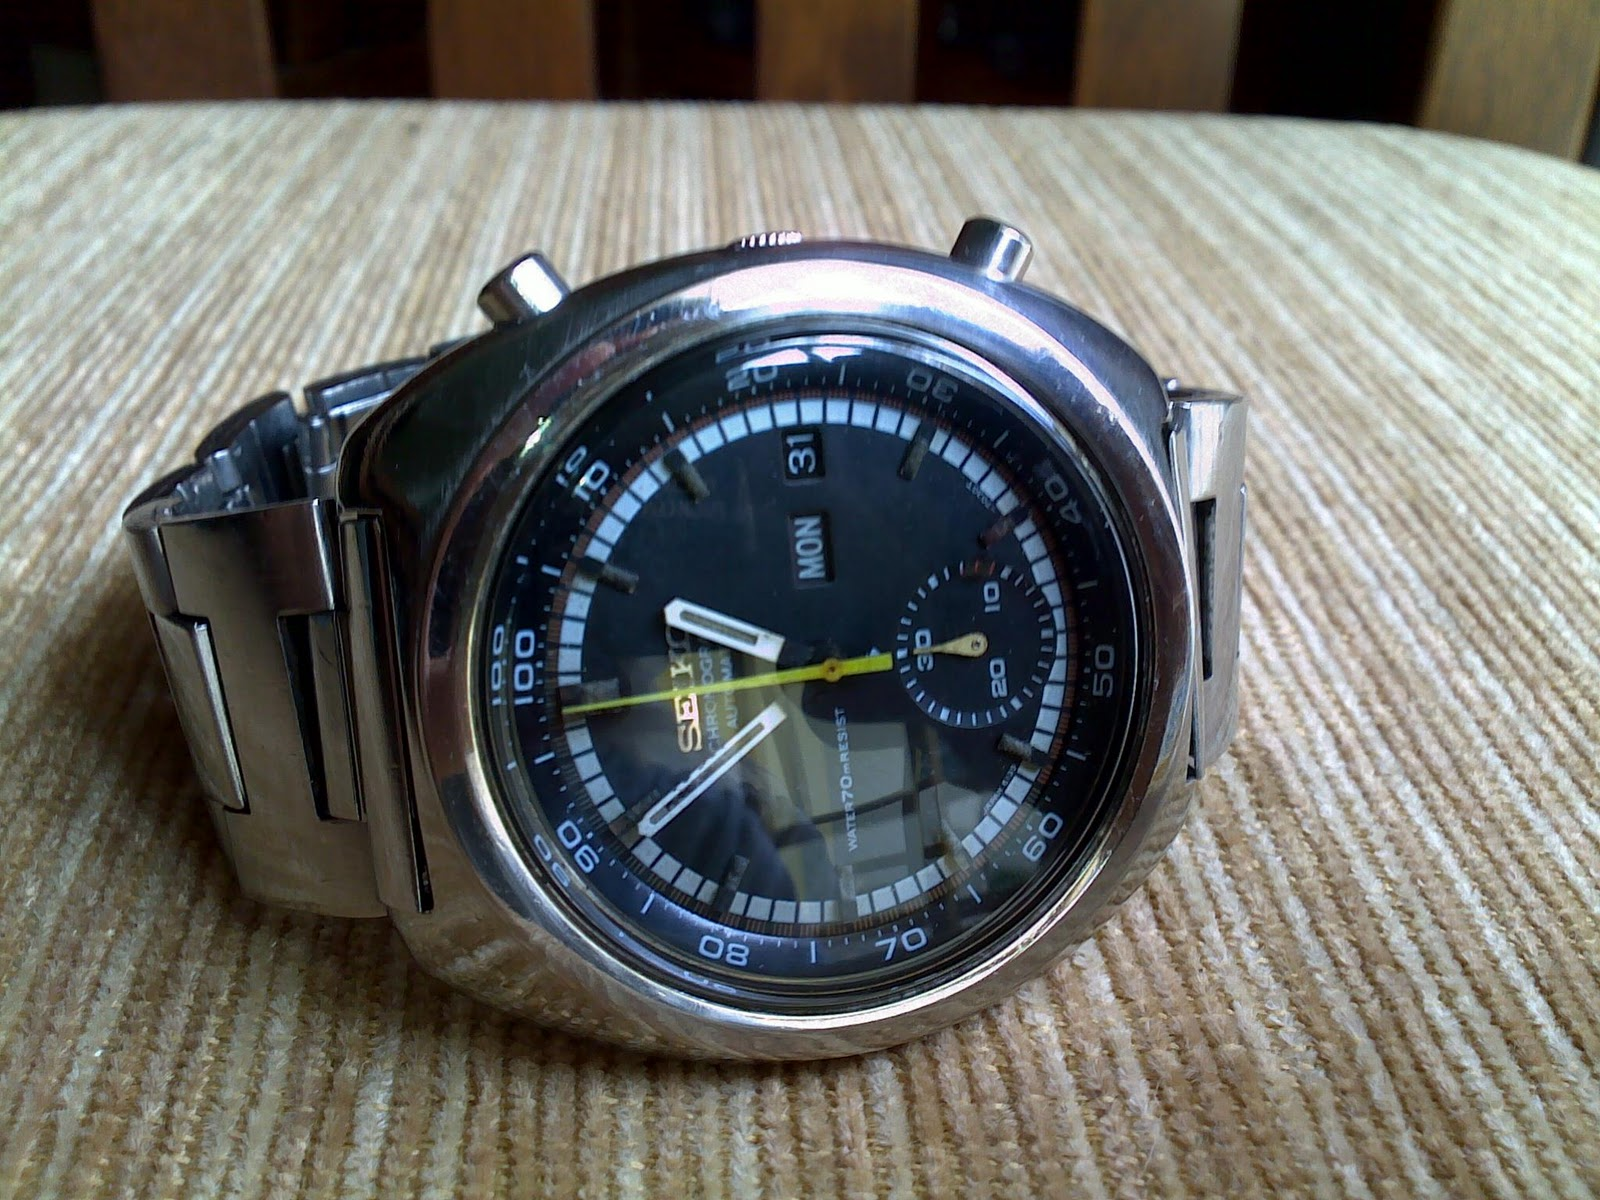 Jam Seiko Chrono 6139 (Preview only)